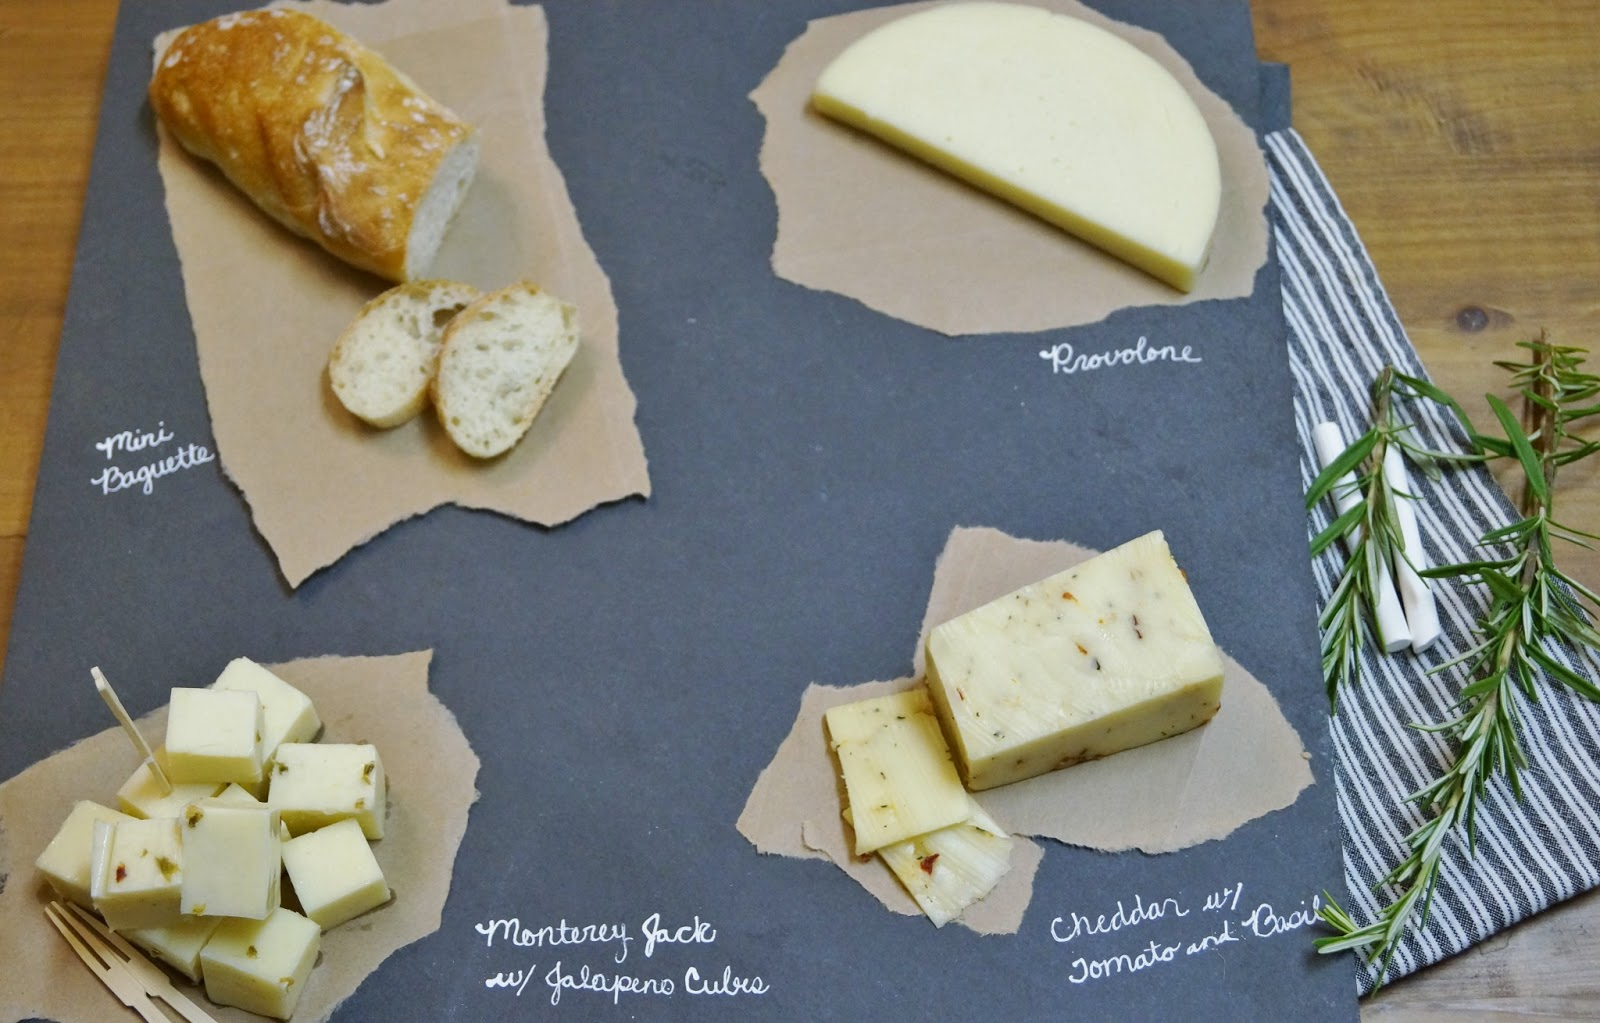 iu0027ve seen many different cheese platters and displays but i love the slate boards best itu0027s such a great color and is very versatile making it simple to